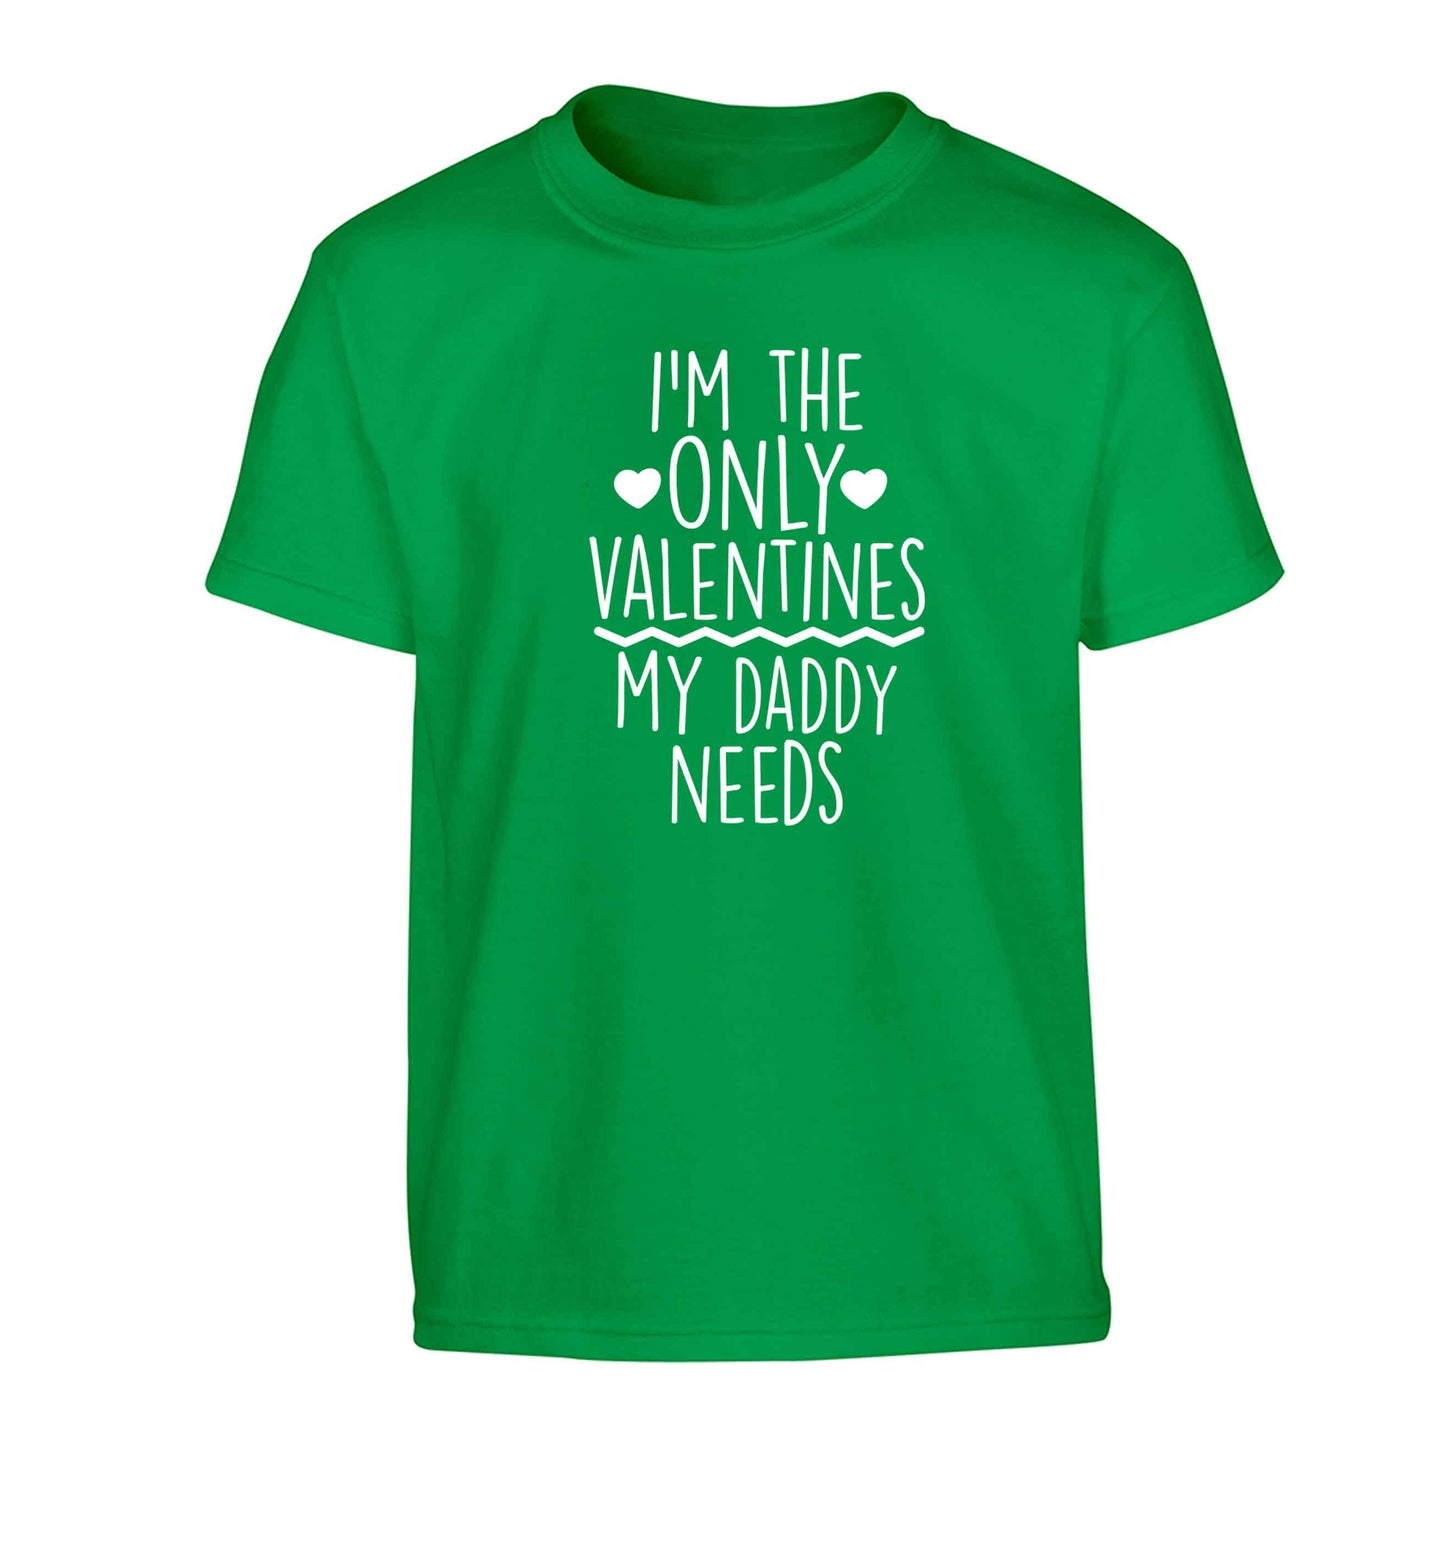 I'm the only valentines my daddy needs Children's green Tshirt 12-13 Years